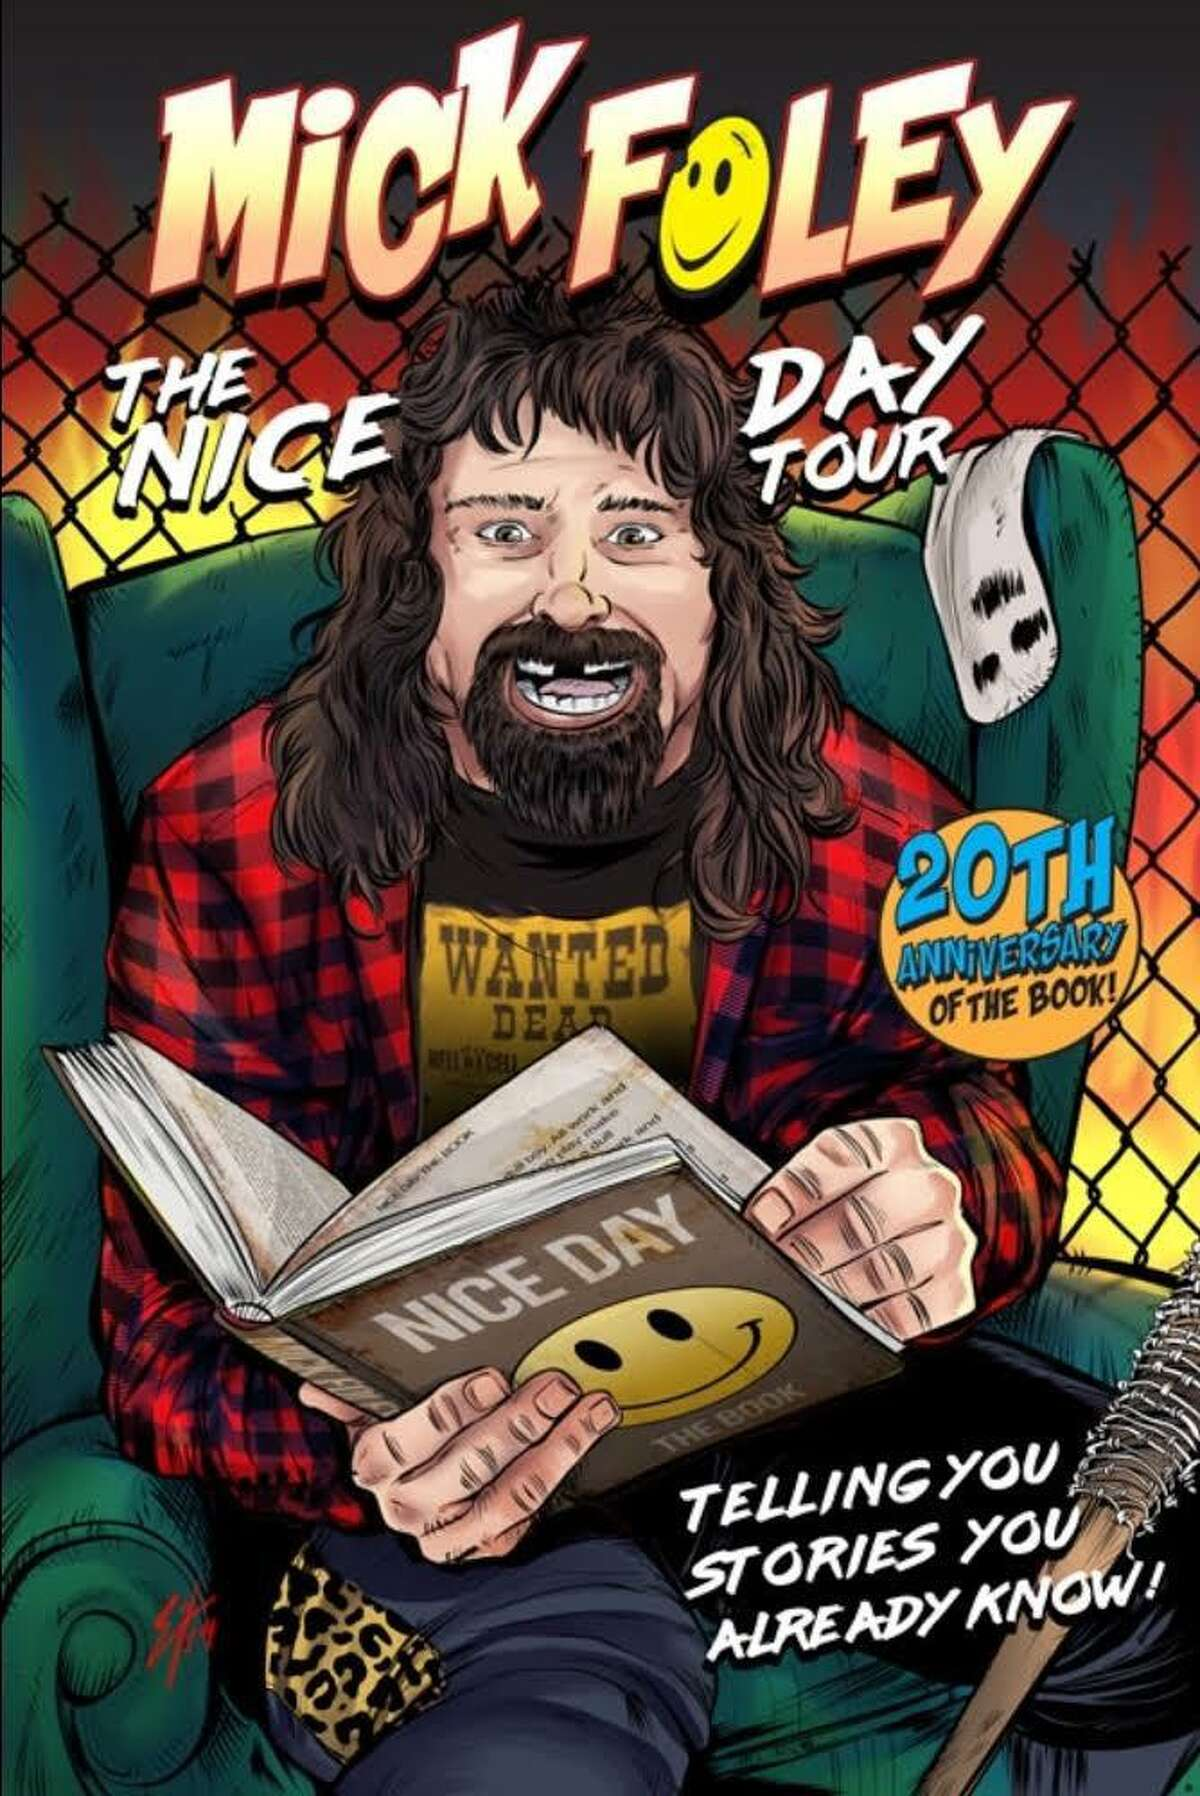 Mick Foley is coming to The State House in New Haven on Feb. 7 ,part of his